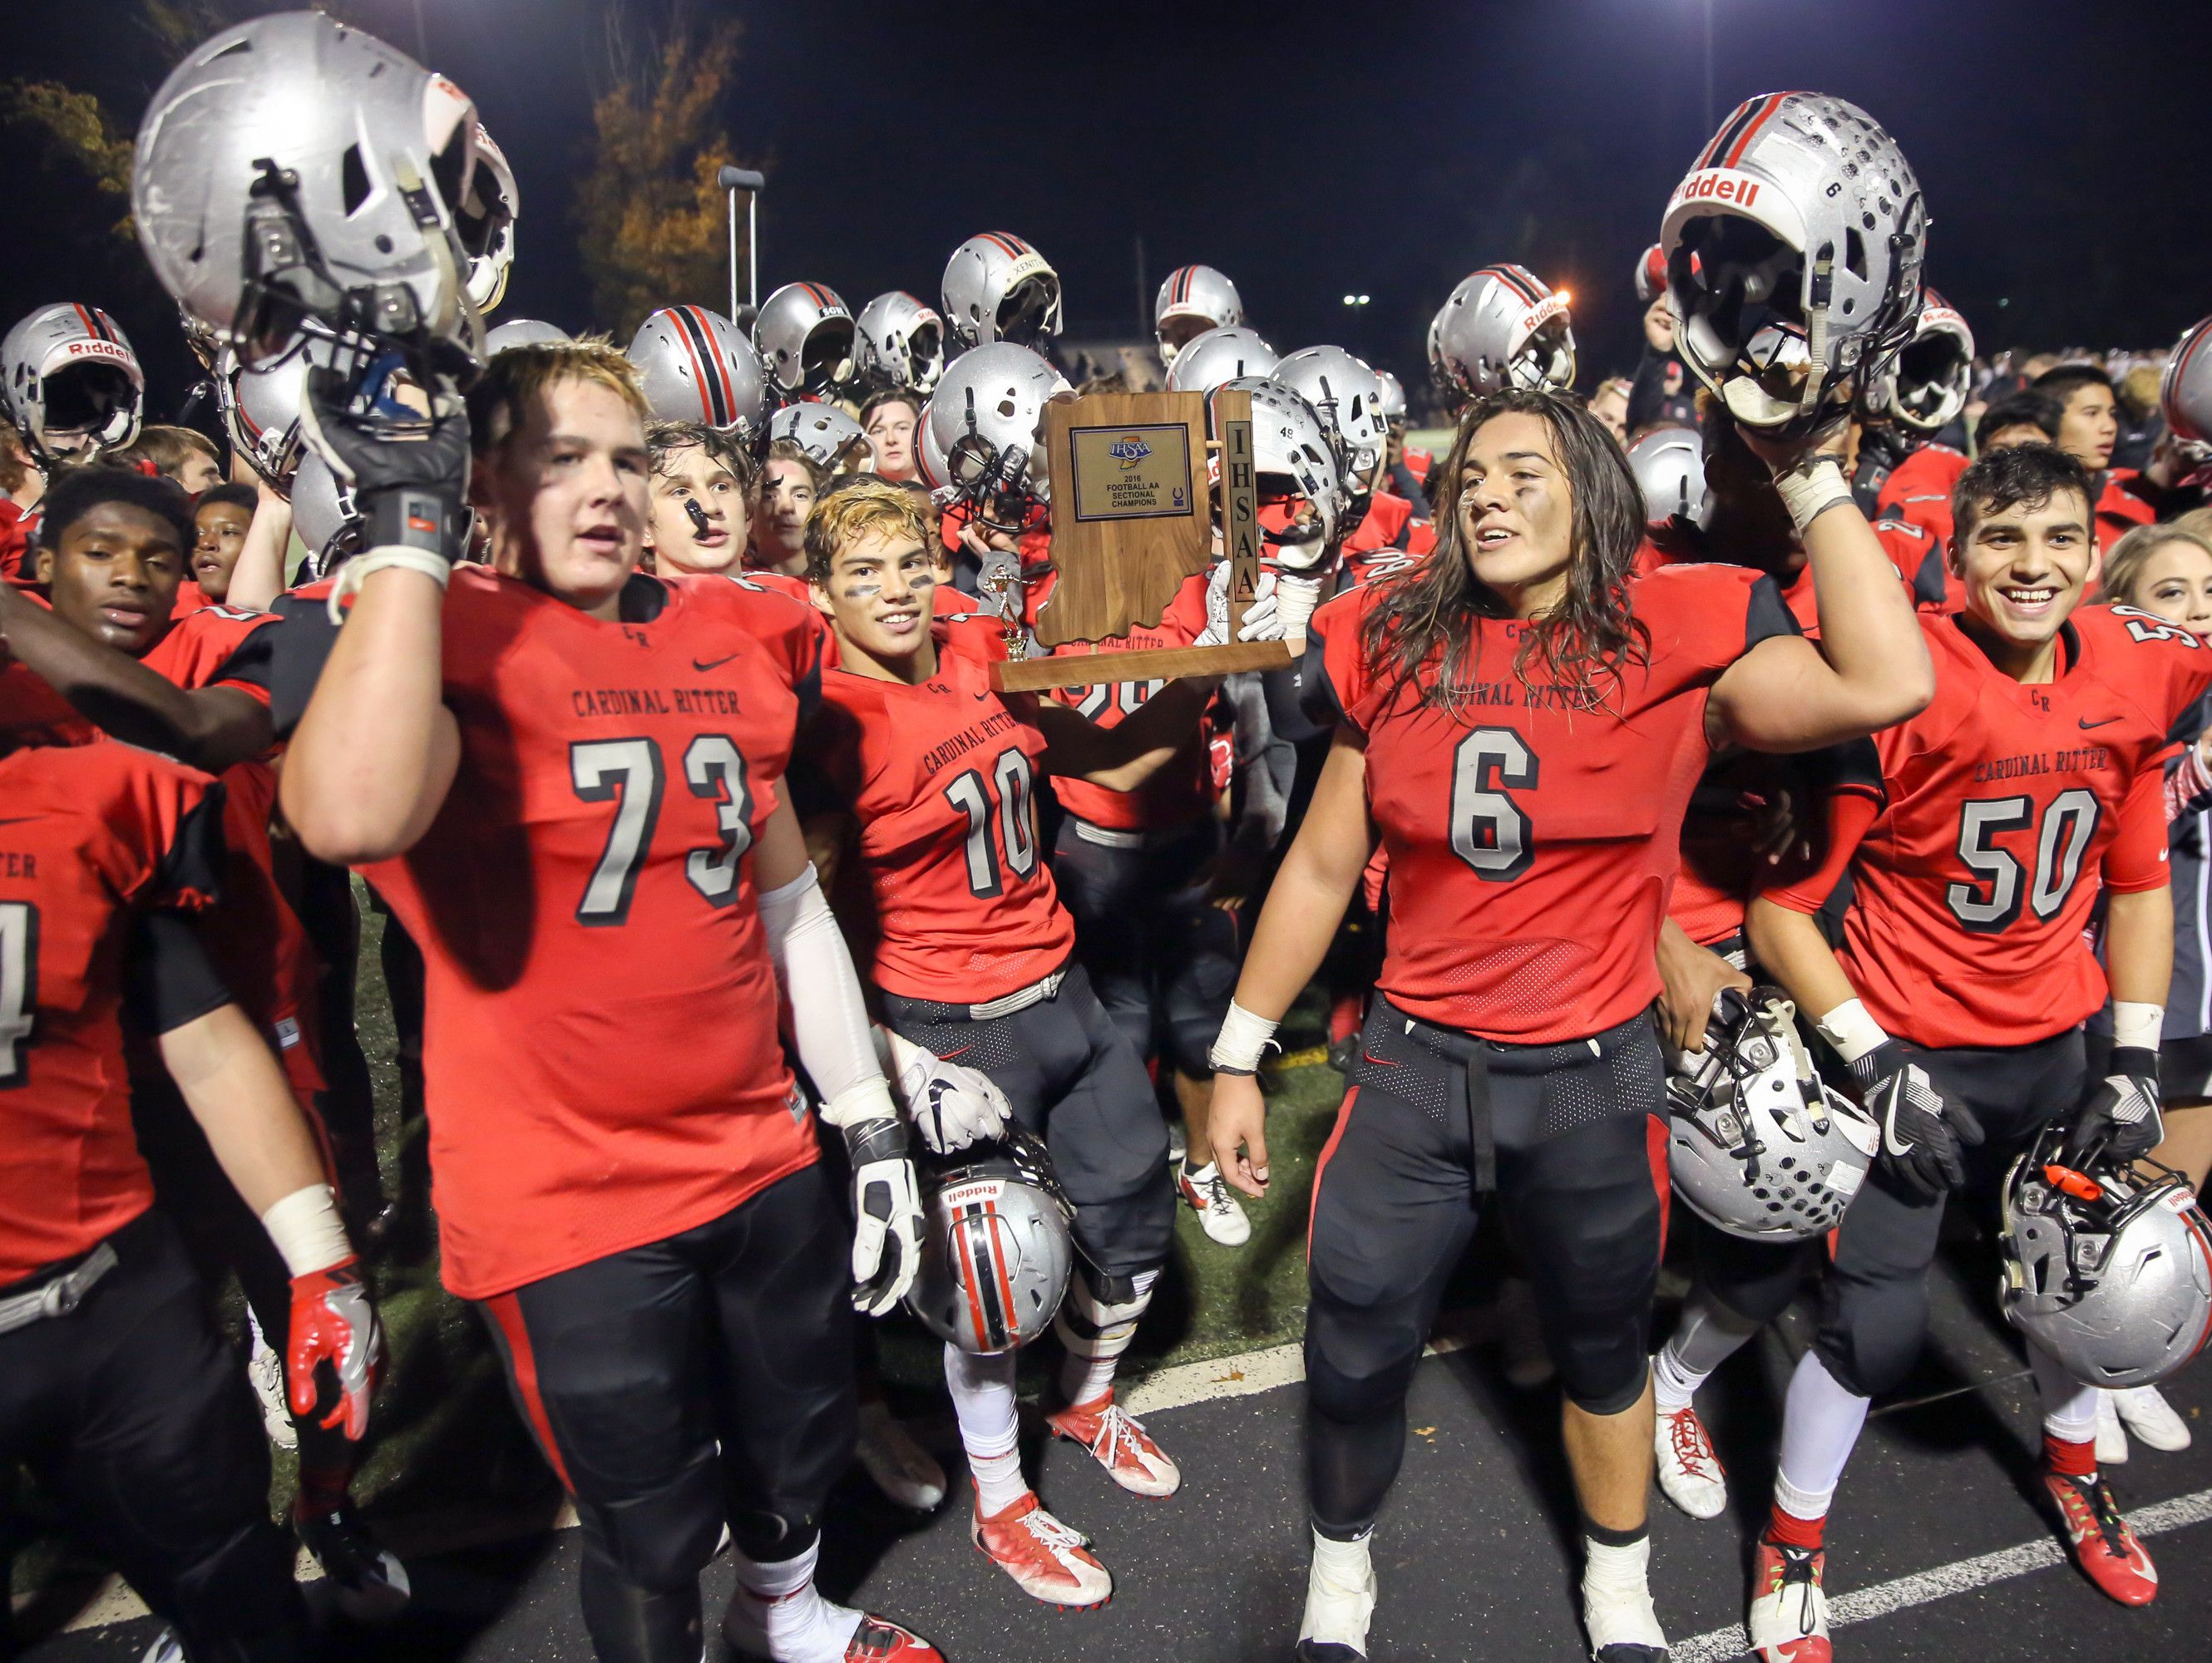 Cardinal Ritter defeated Lapel 26-21 to win the the Sectional 37 crown on Friday night.